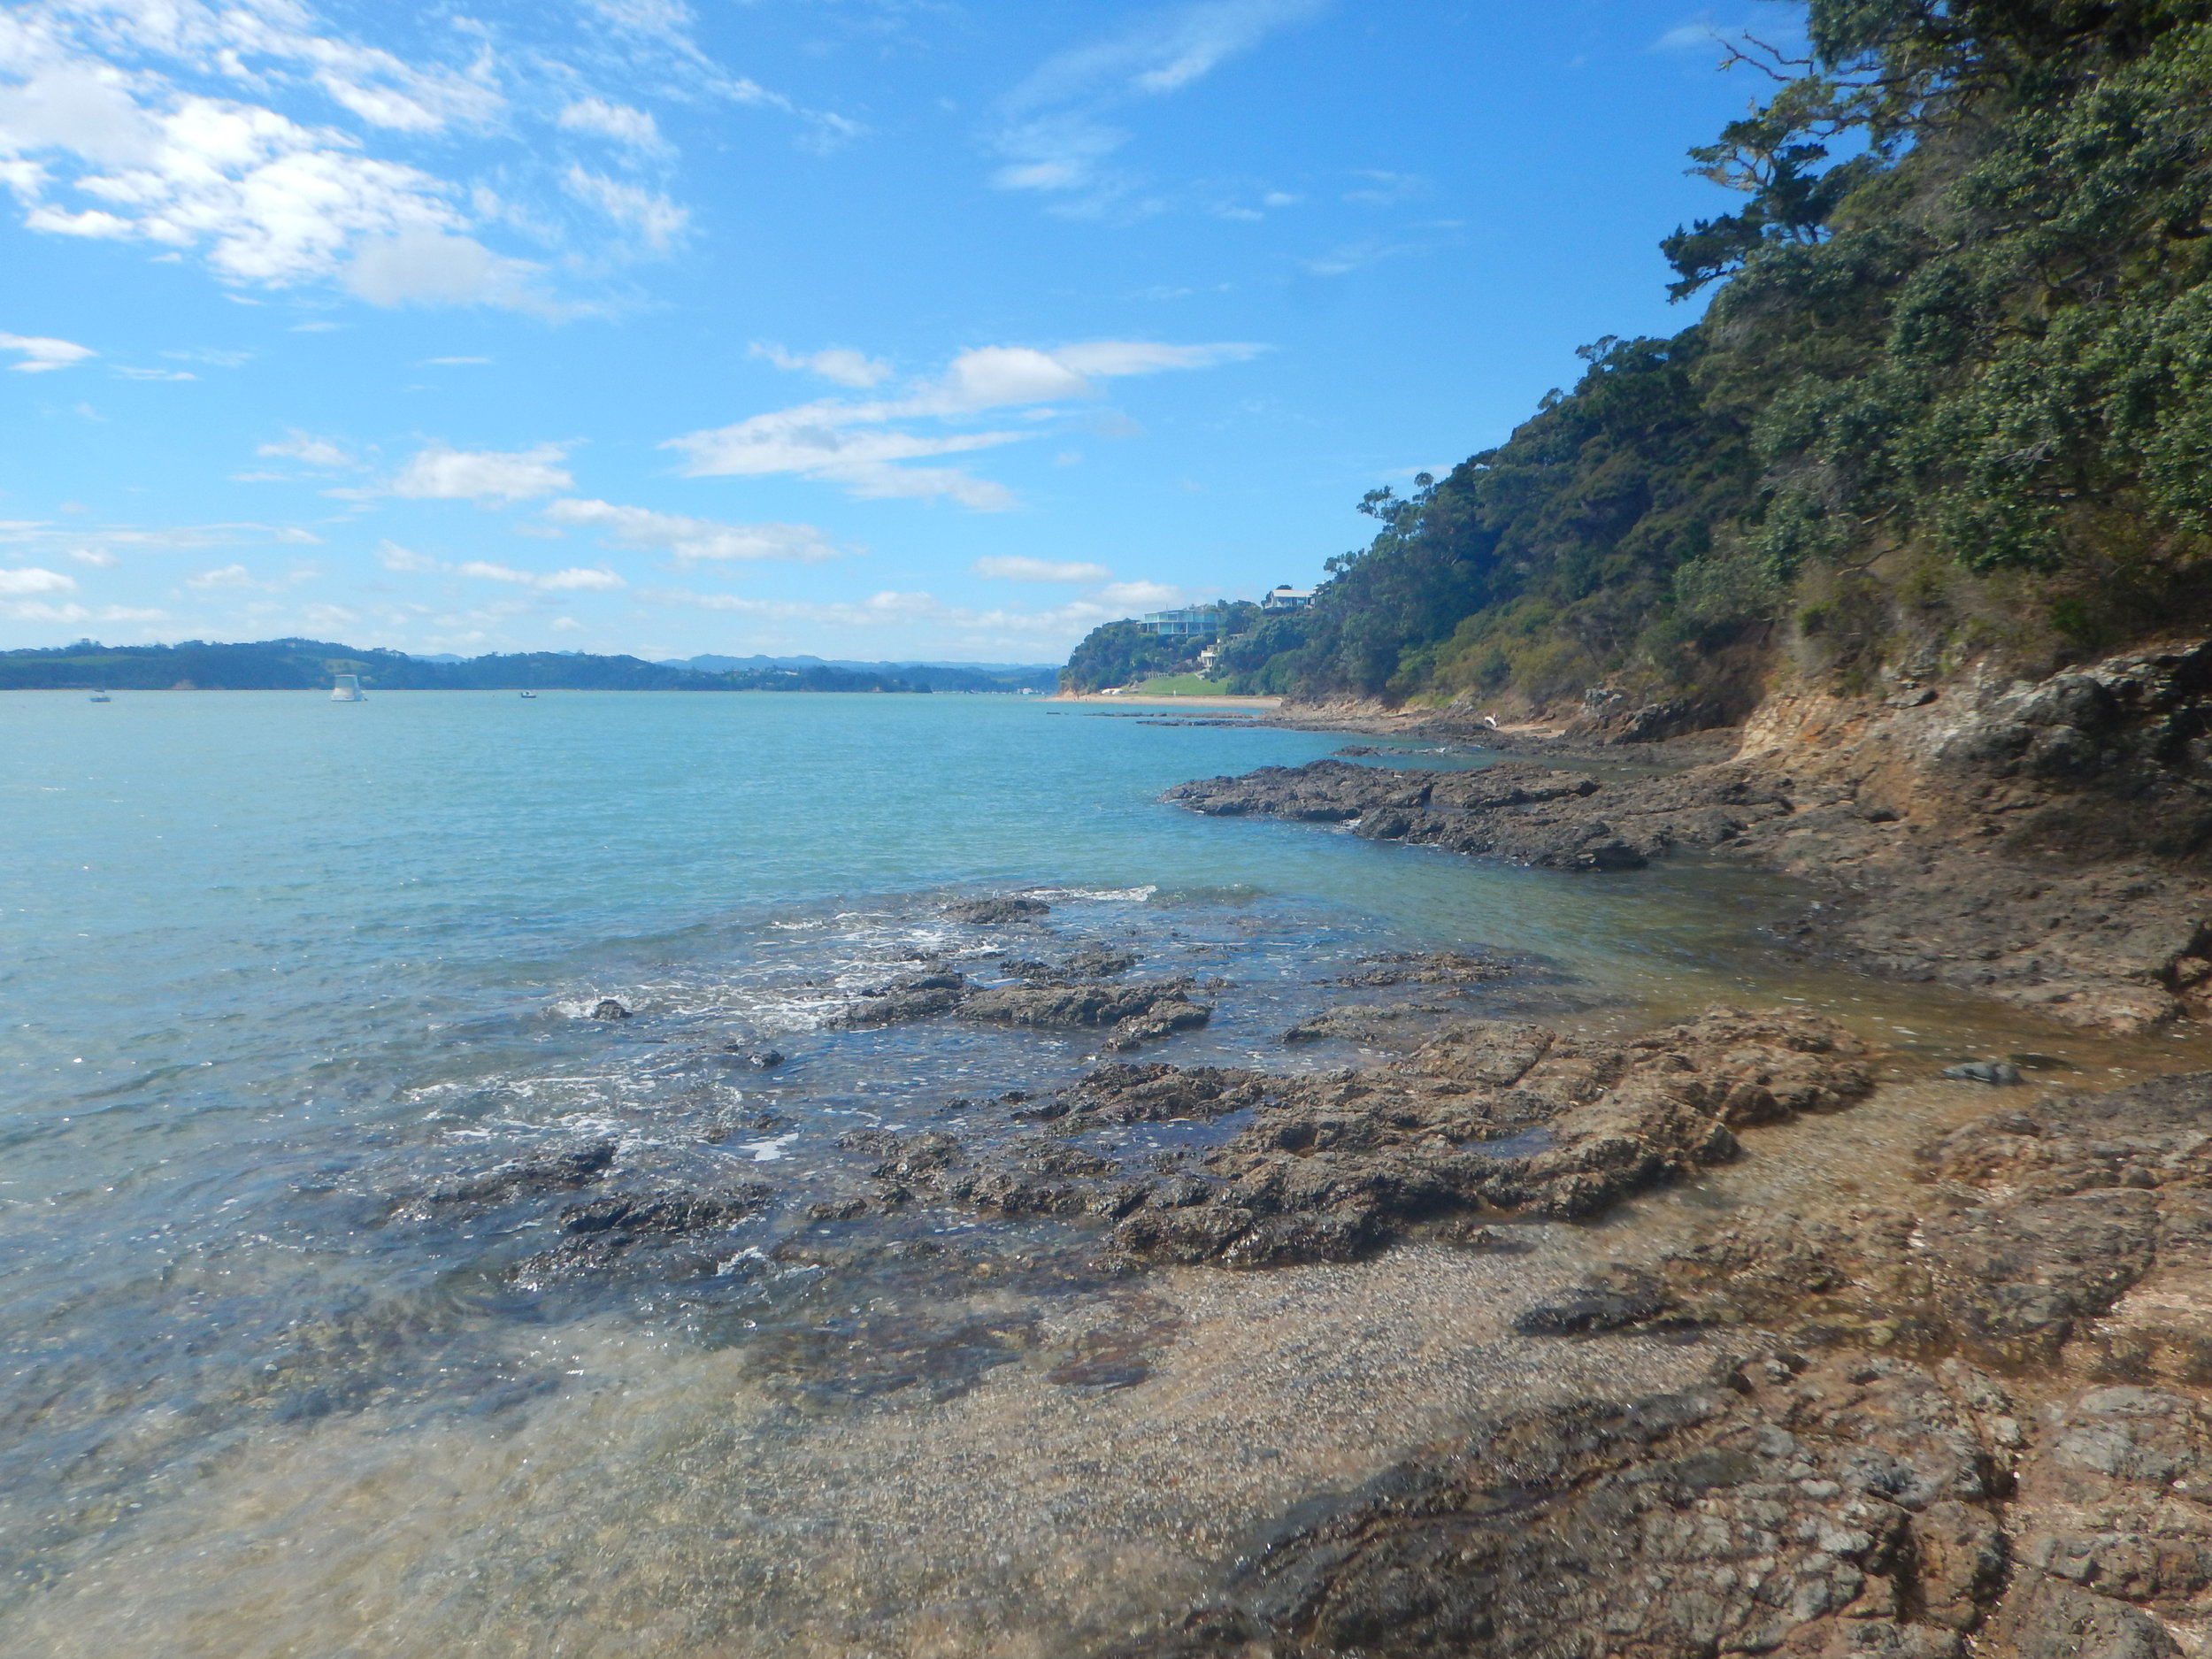 Part of the walk between Opua and Pahia is right along the coast.  Make sure you check the tides!  (High tides might make trail impassable.)